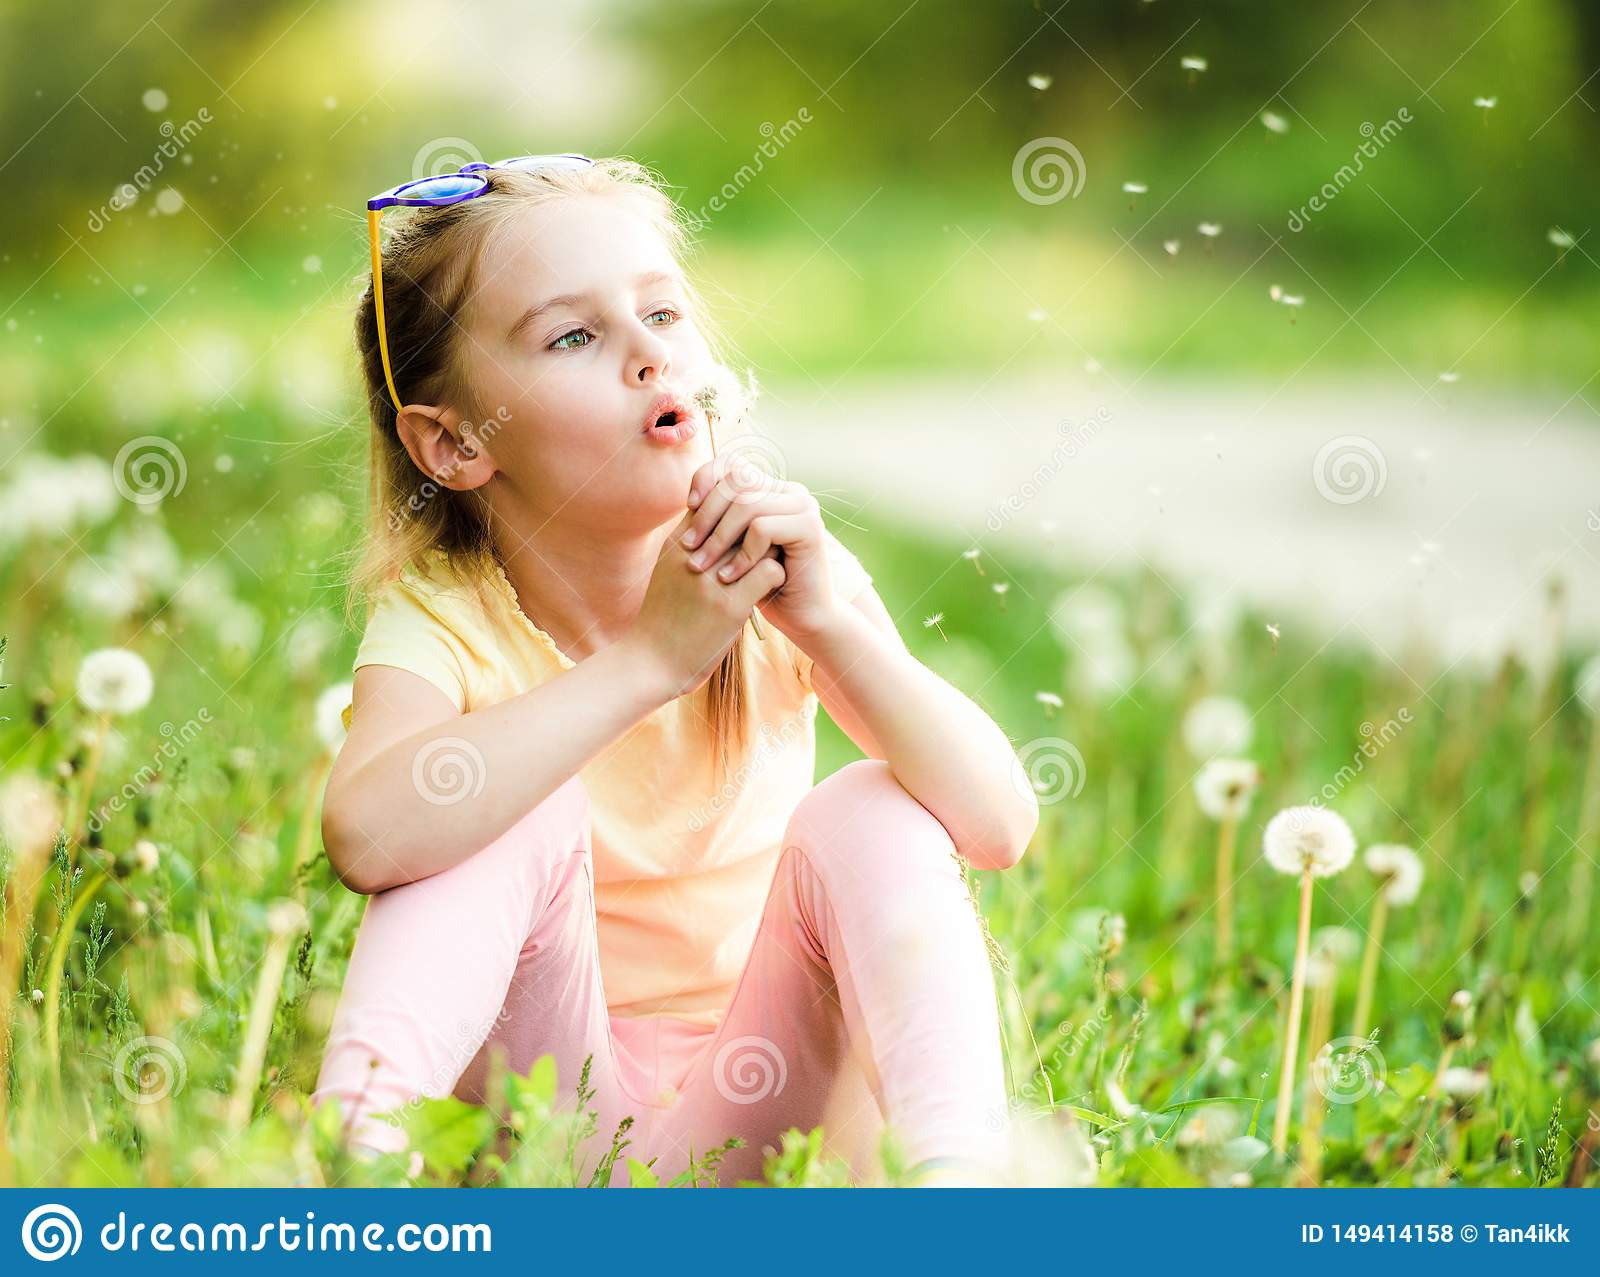 Cute Girl Playing With Dandelions Stock Photo Image Of Meadow